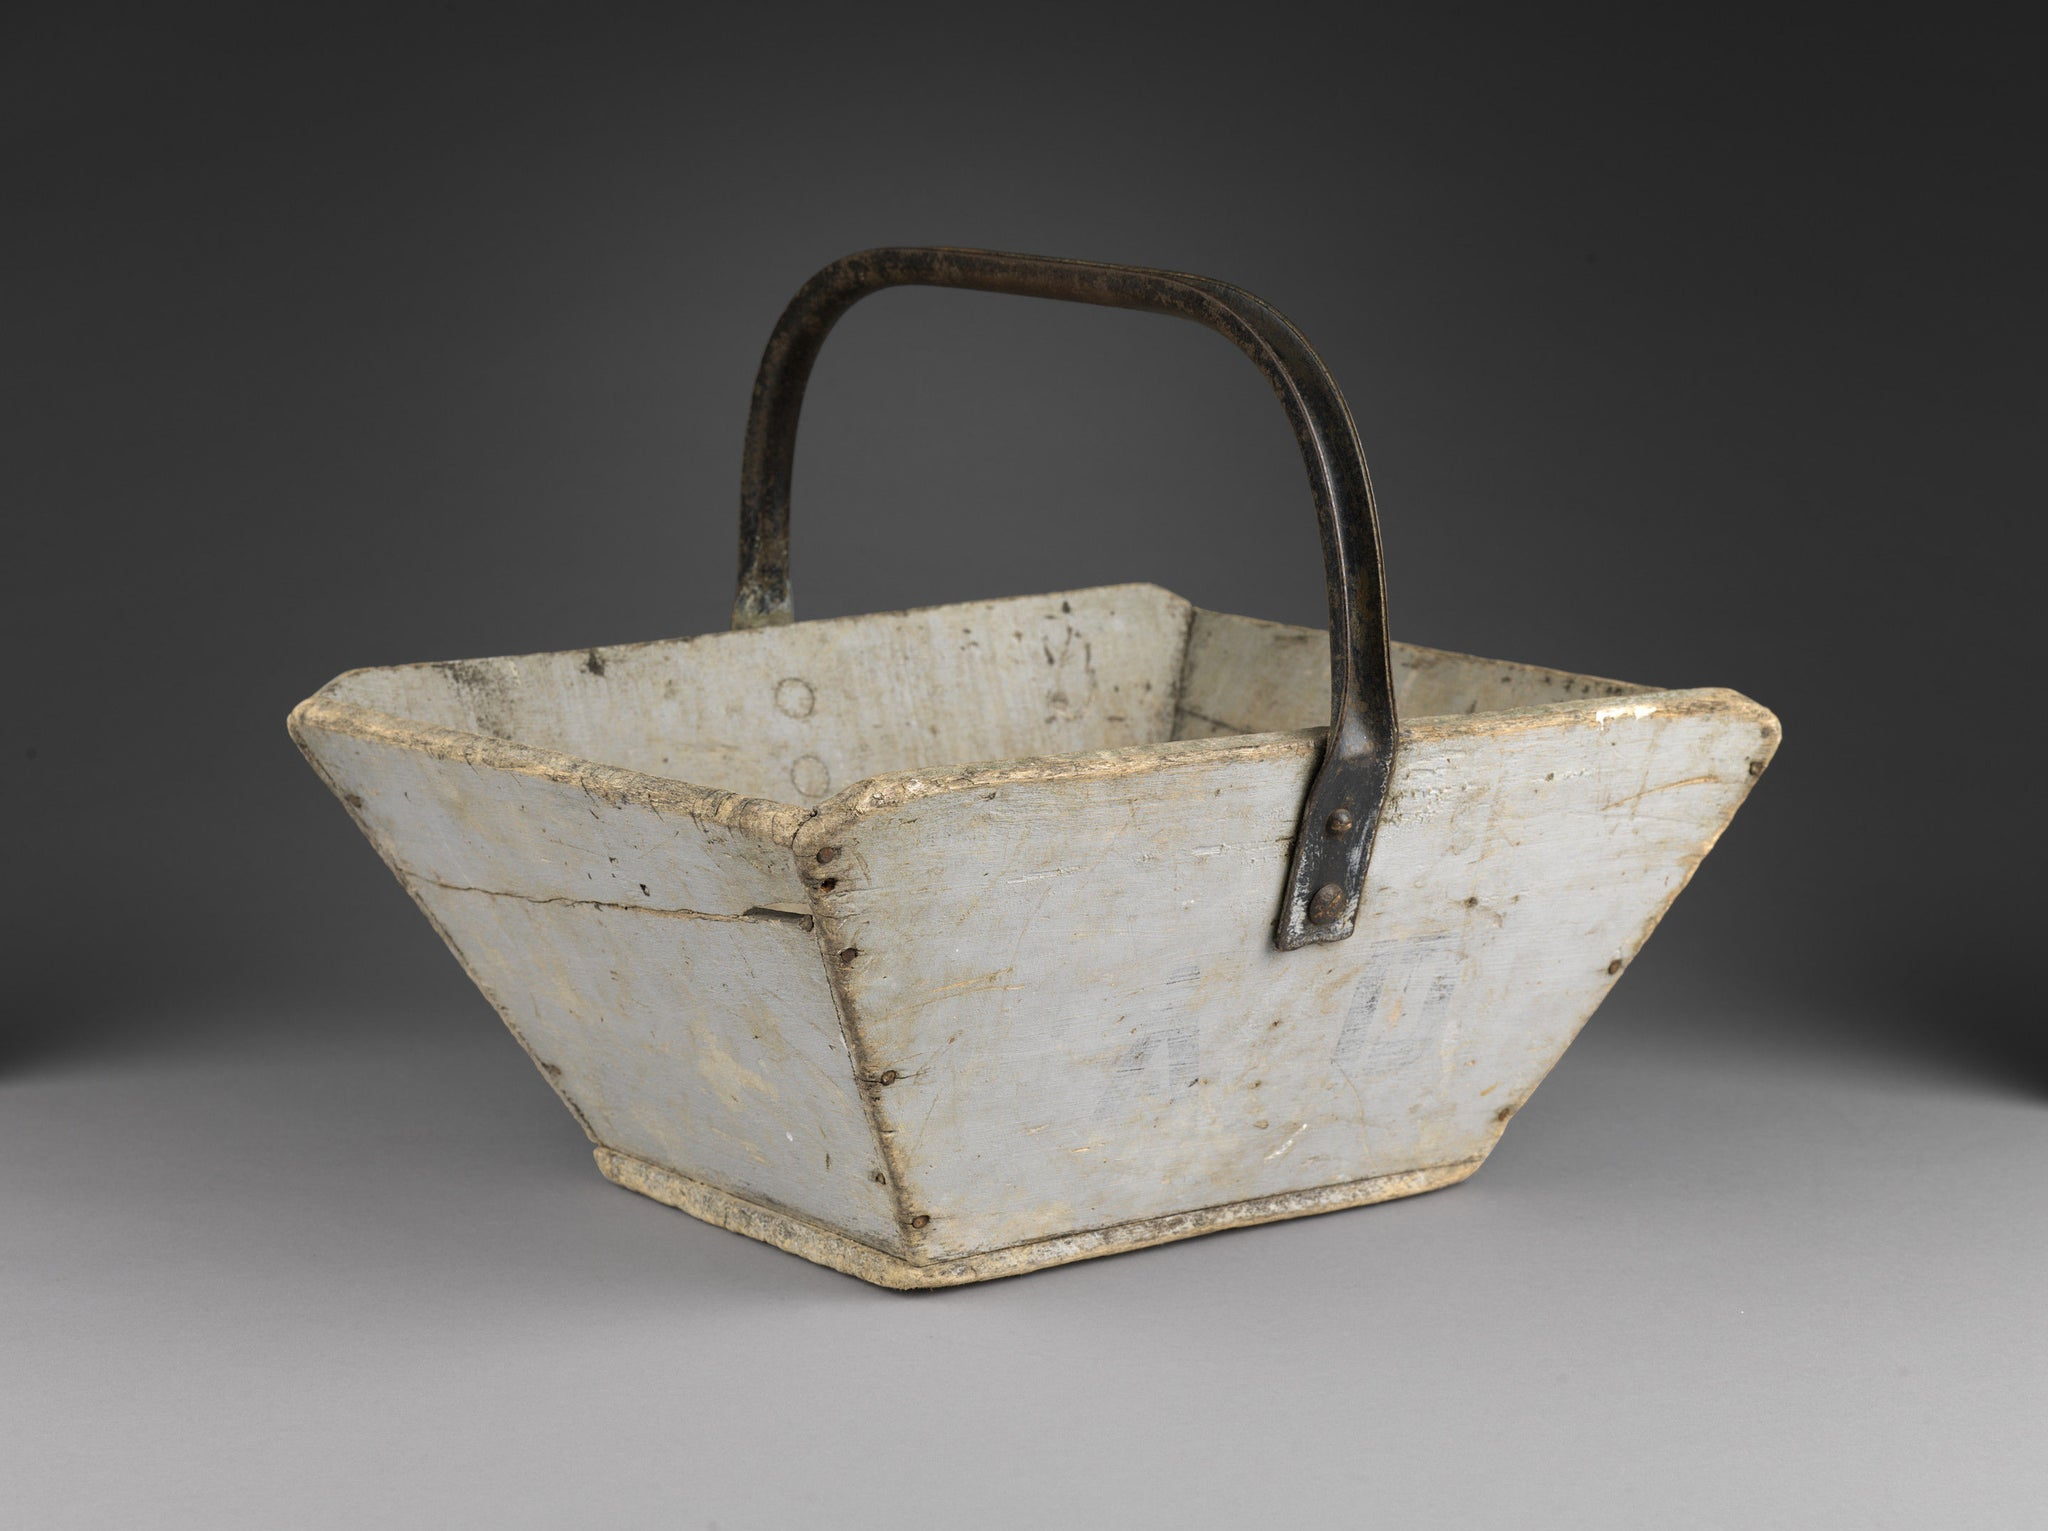 A Pair of Rectangular Trugs